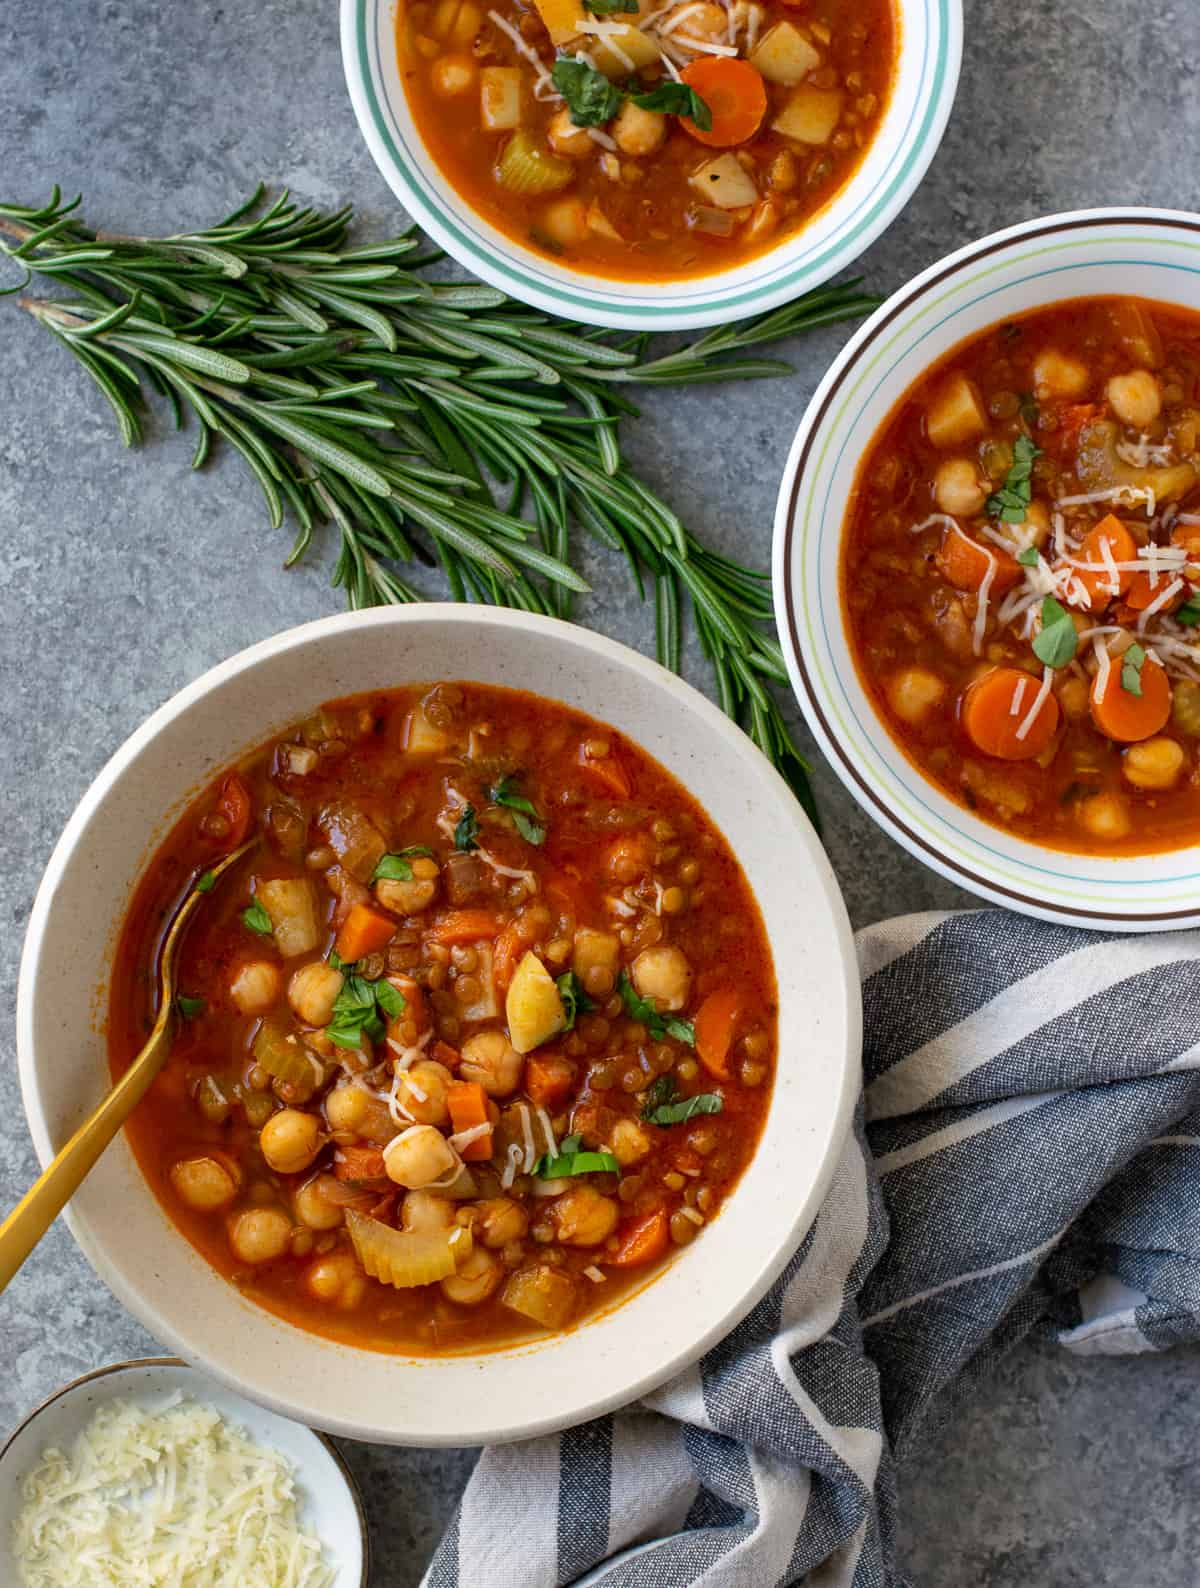 Lentil Soup With Chickpeas Rosemary & Garlic served in three bowls